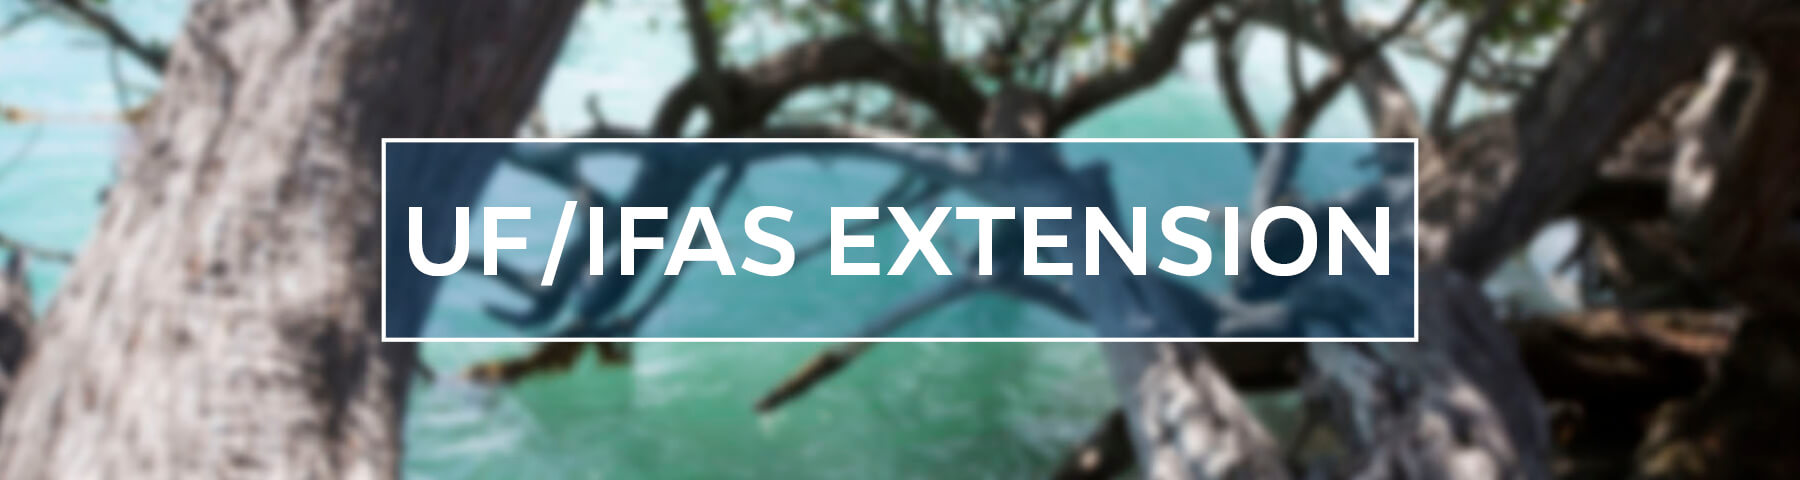 UF/IFAS Extension